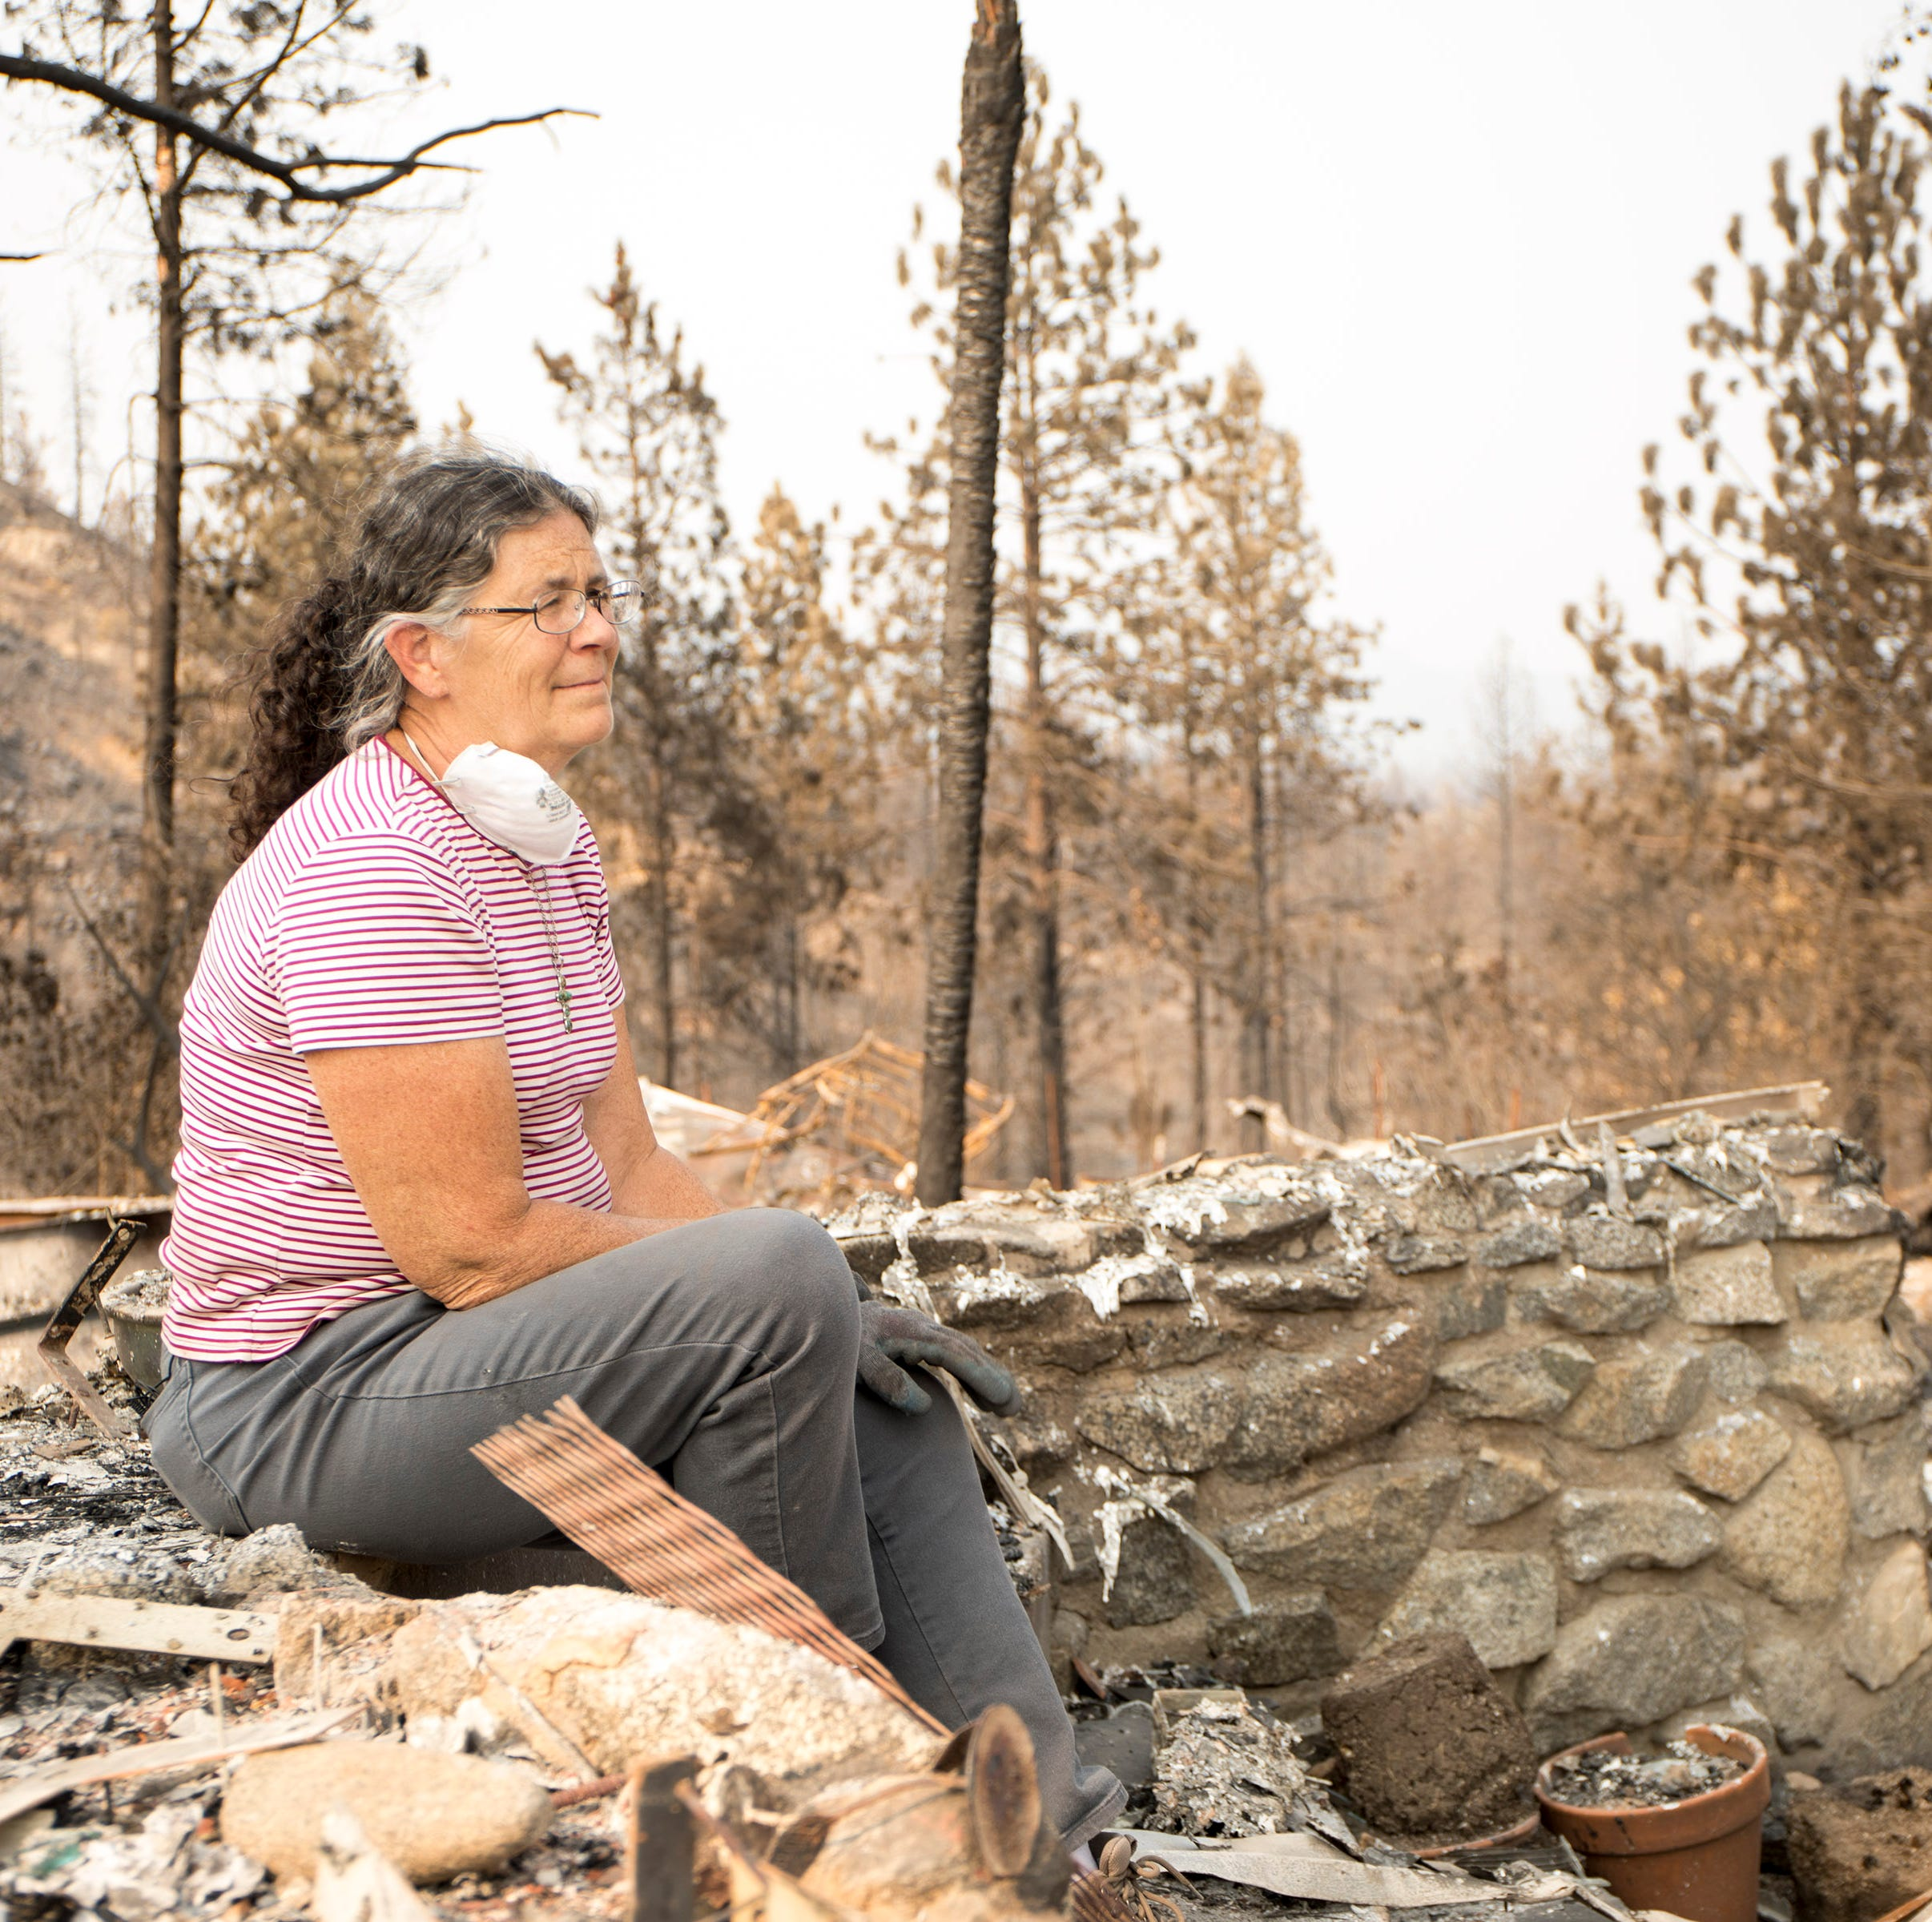 After the Carr Fire: Keswick wildfire survivor 'thinking about the future'